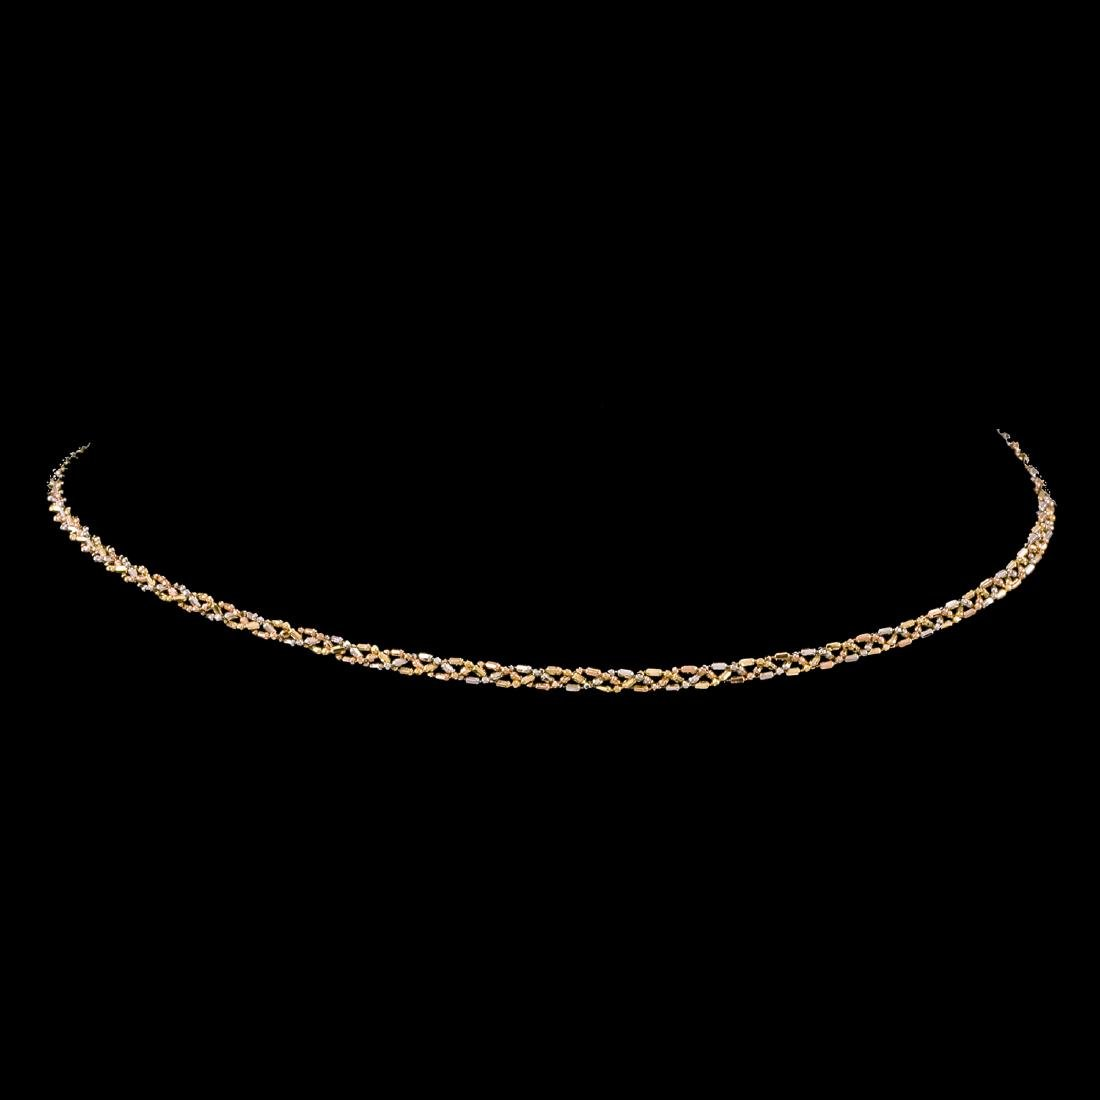 *Fine Jewelry 14KT White and Yellow Rose Gold Braided